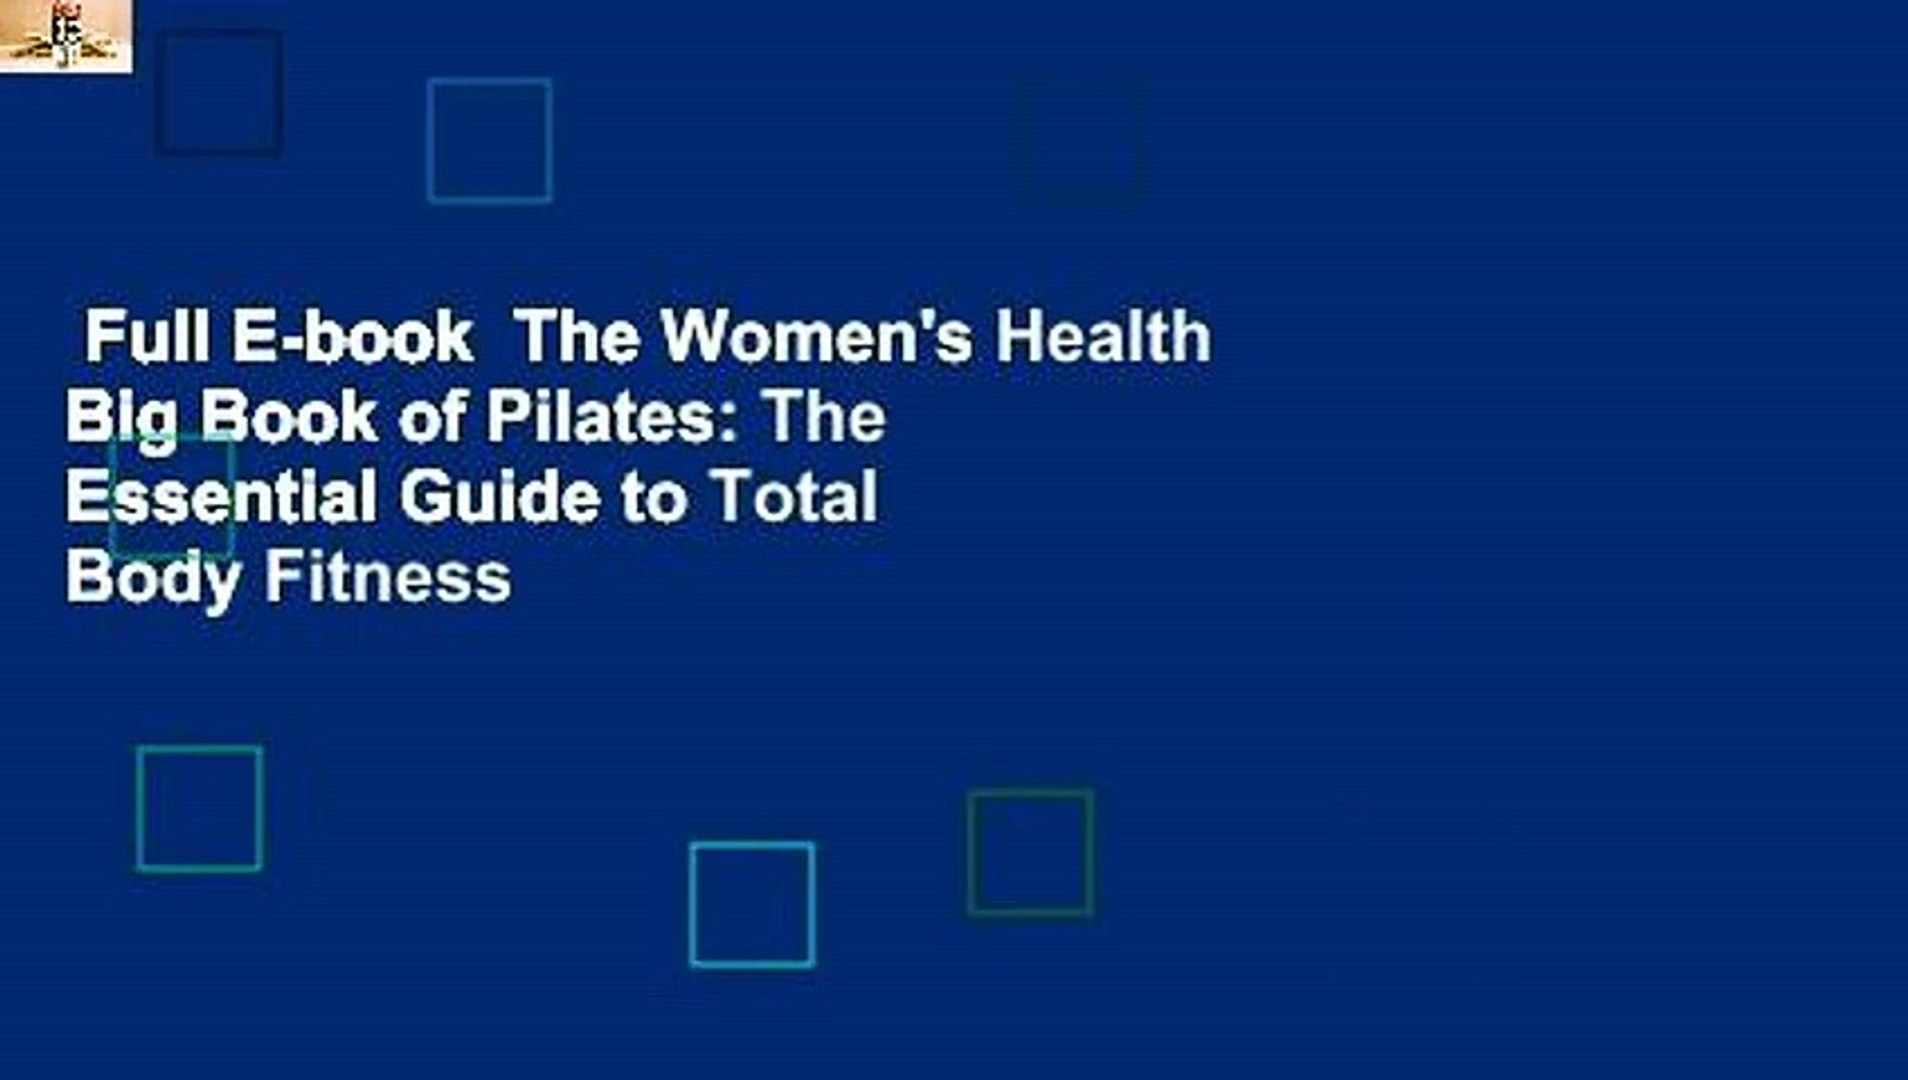 Full E-book  The Women's Health Big Book of Pilates: The Essential Guide to Total Body Fitness